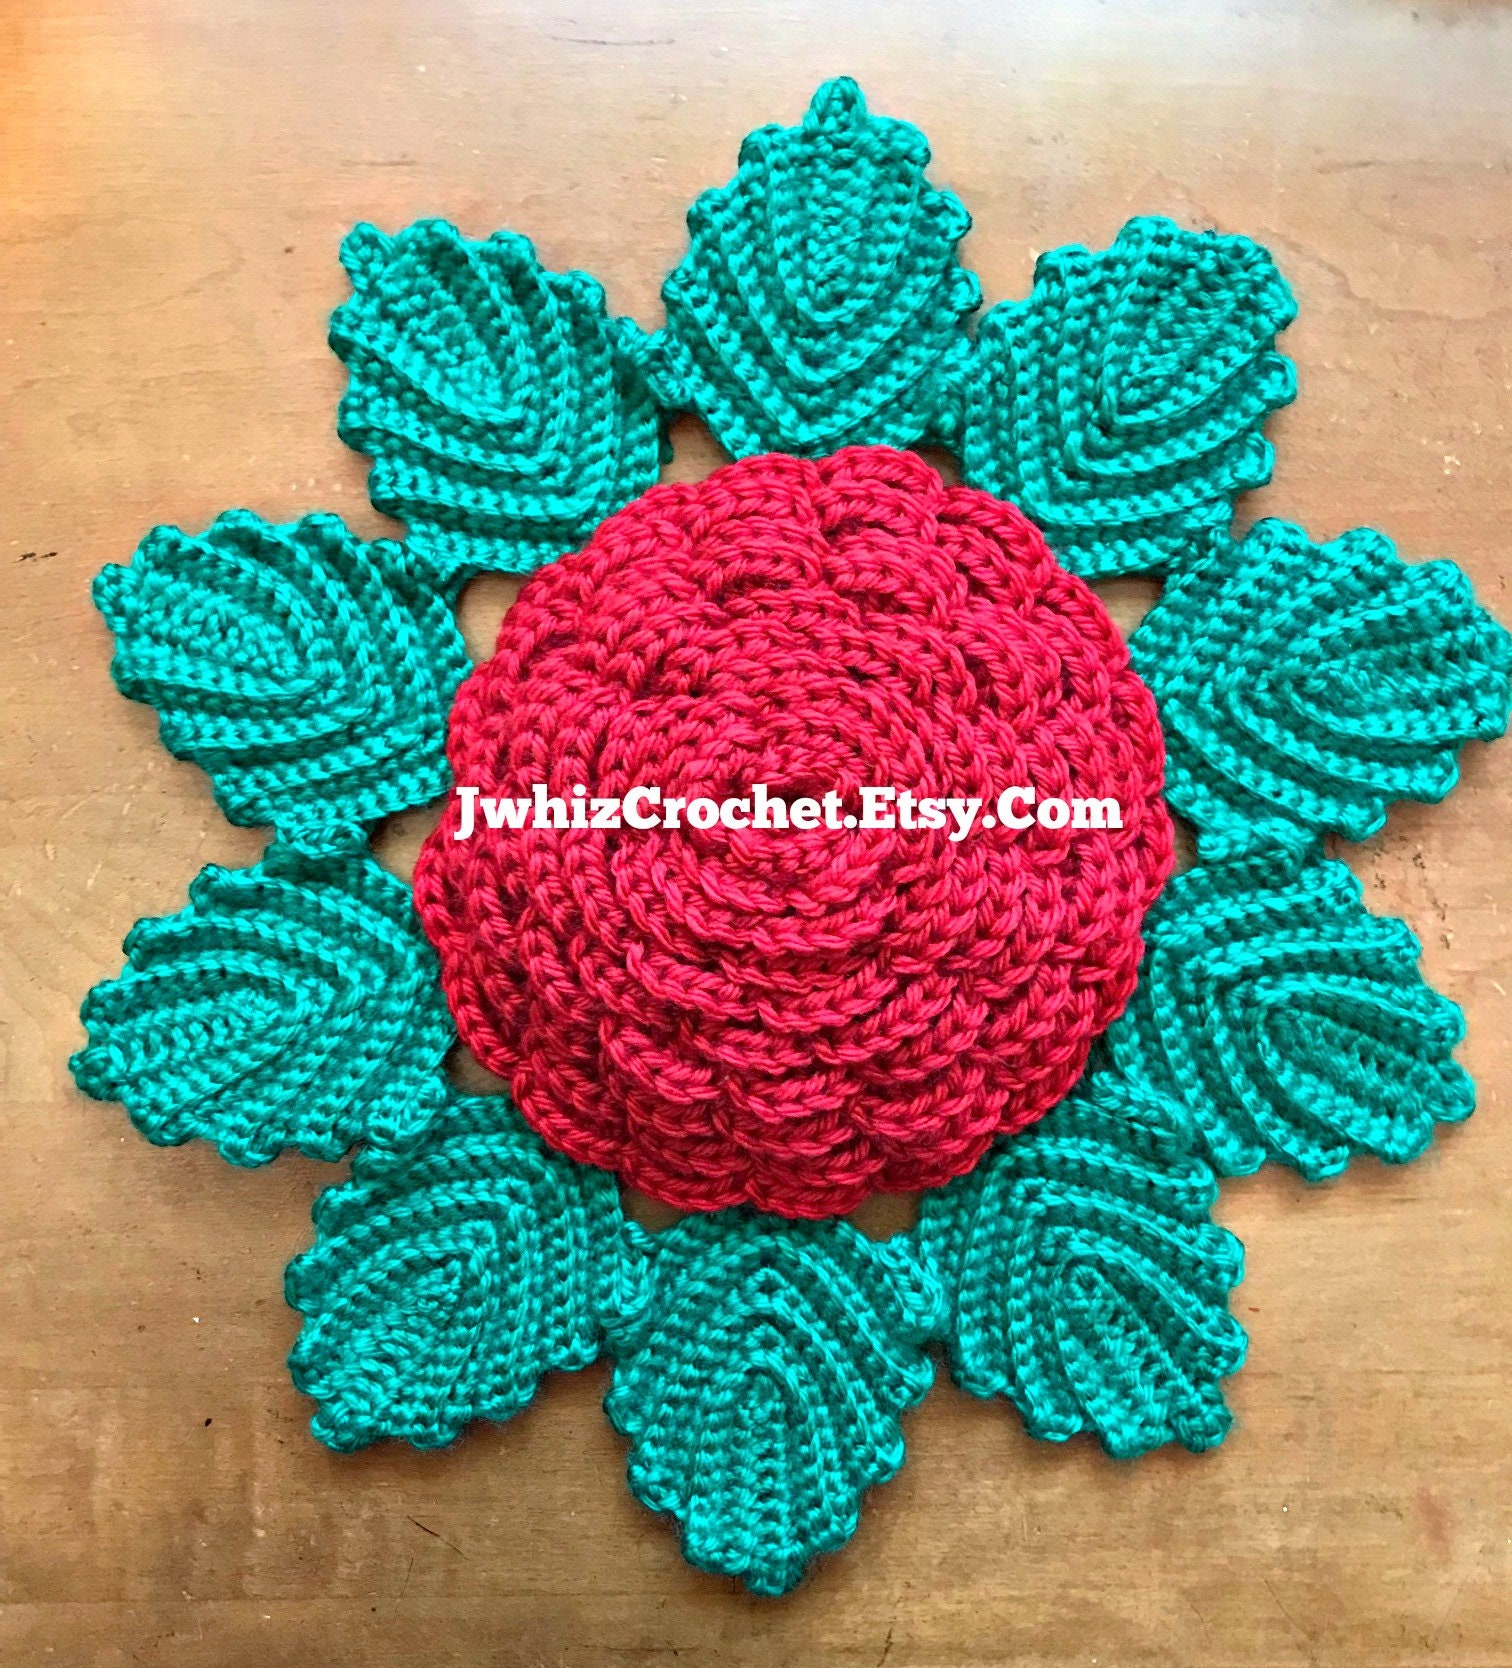 Crochet Large Rose With Leaves Pattern Rose Table Top Etsy